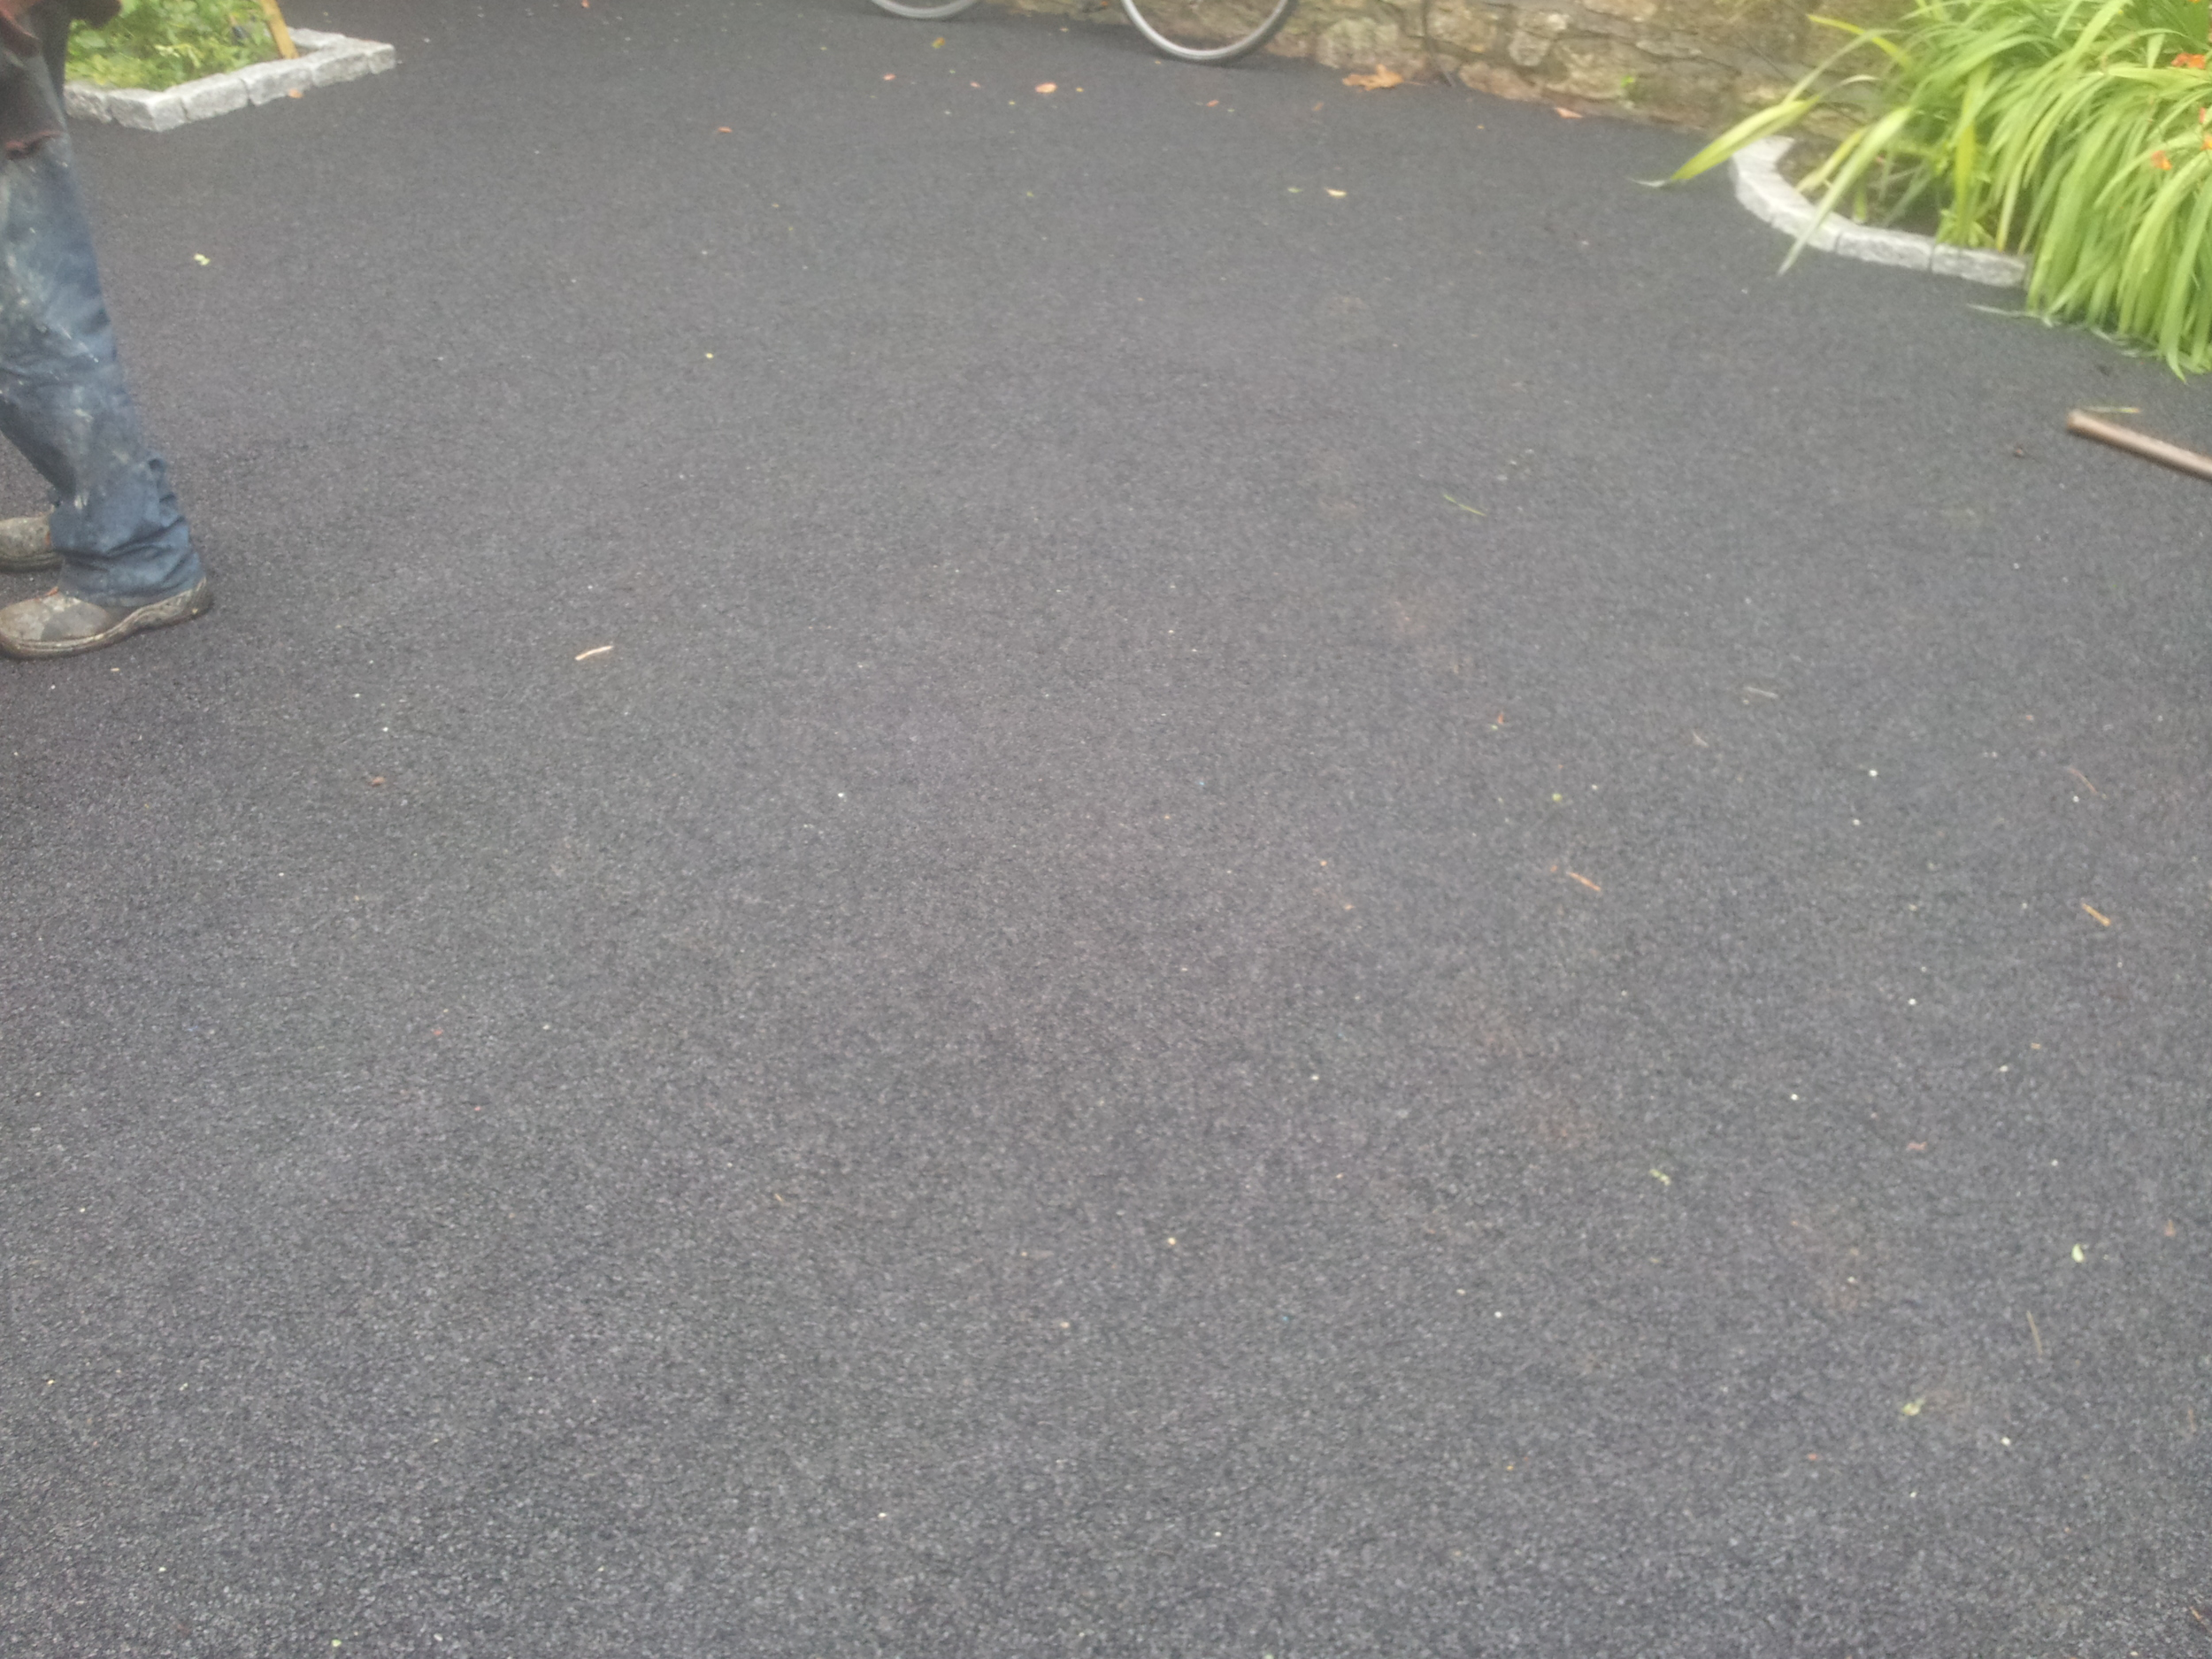 Crumb rubber safety layer